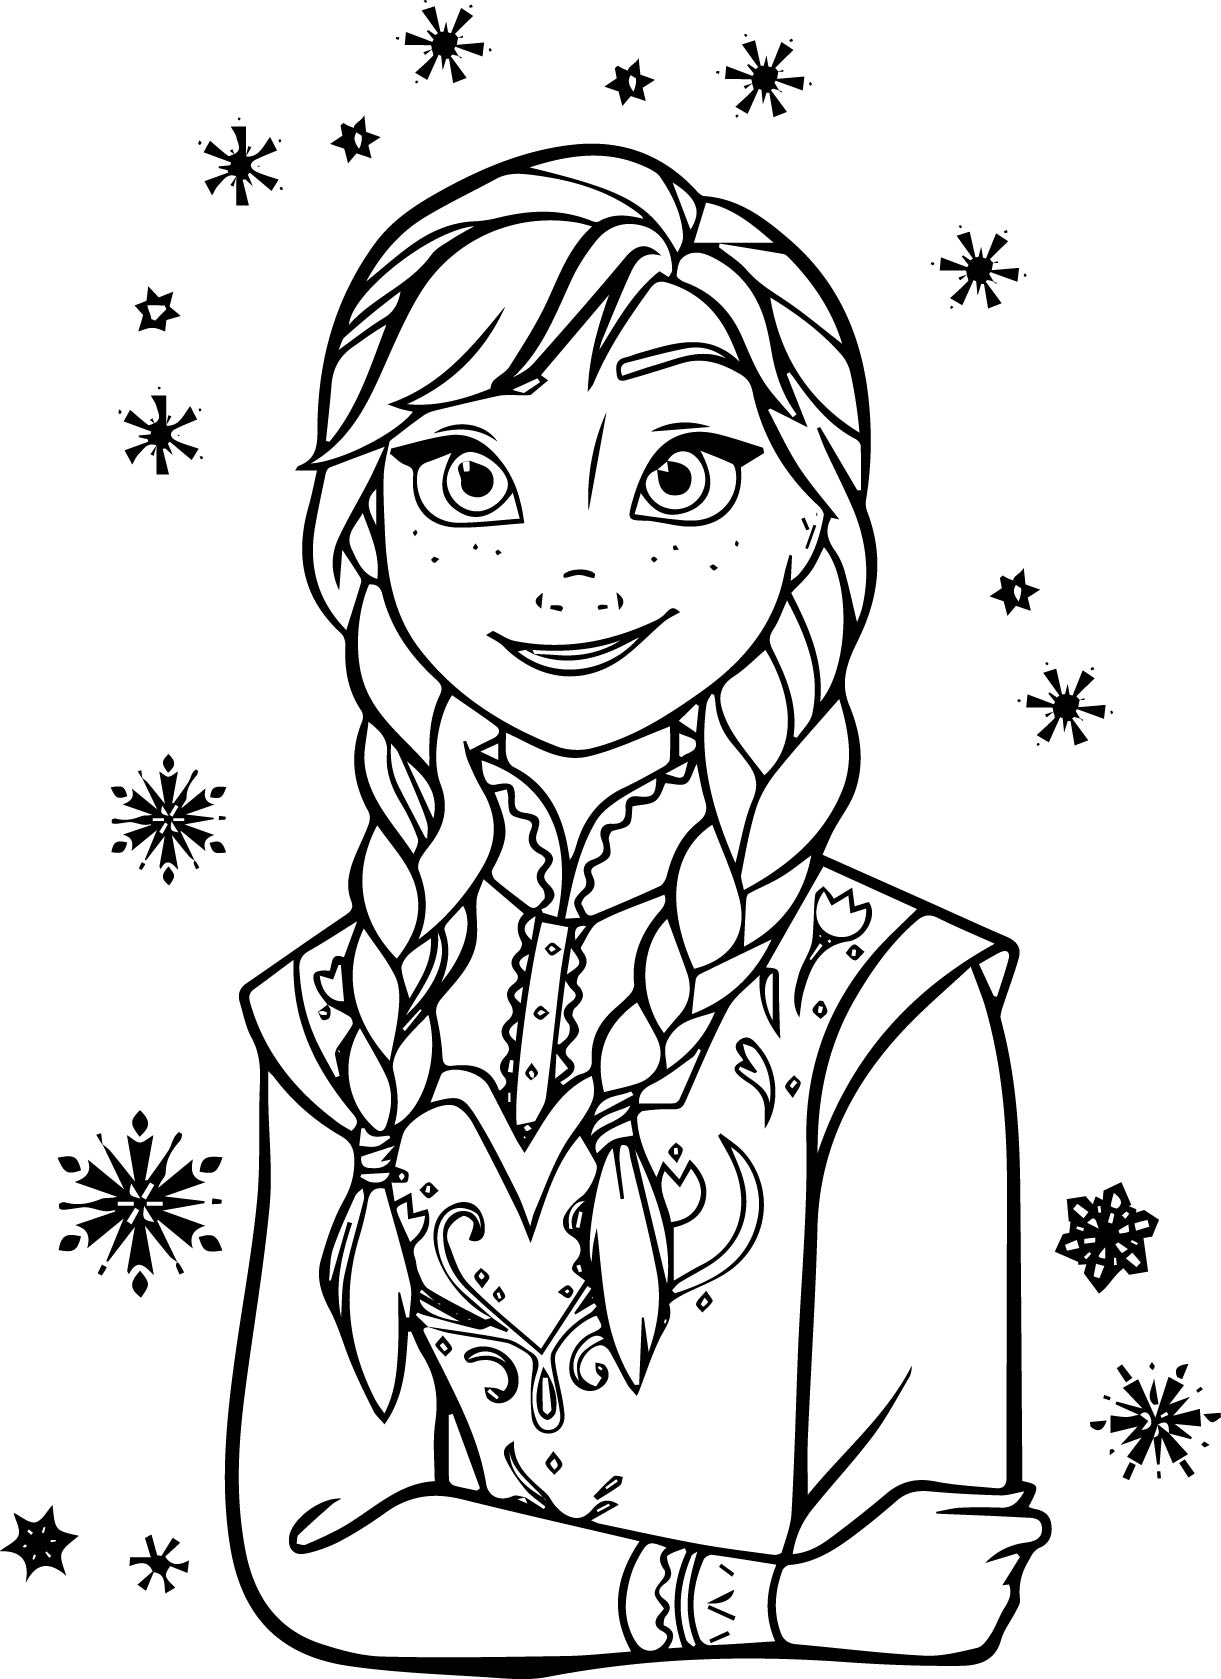 Printable Coloring Pages Elsa At Getdrawings Com Free For Personal